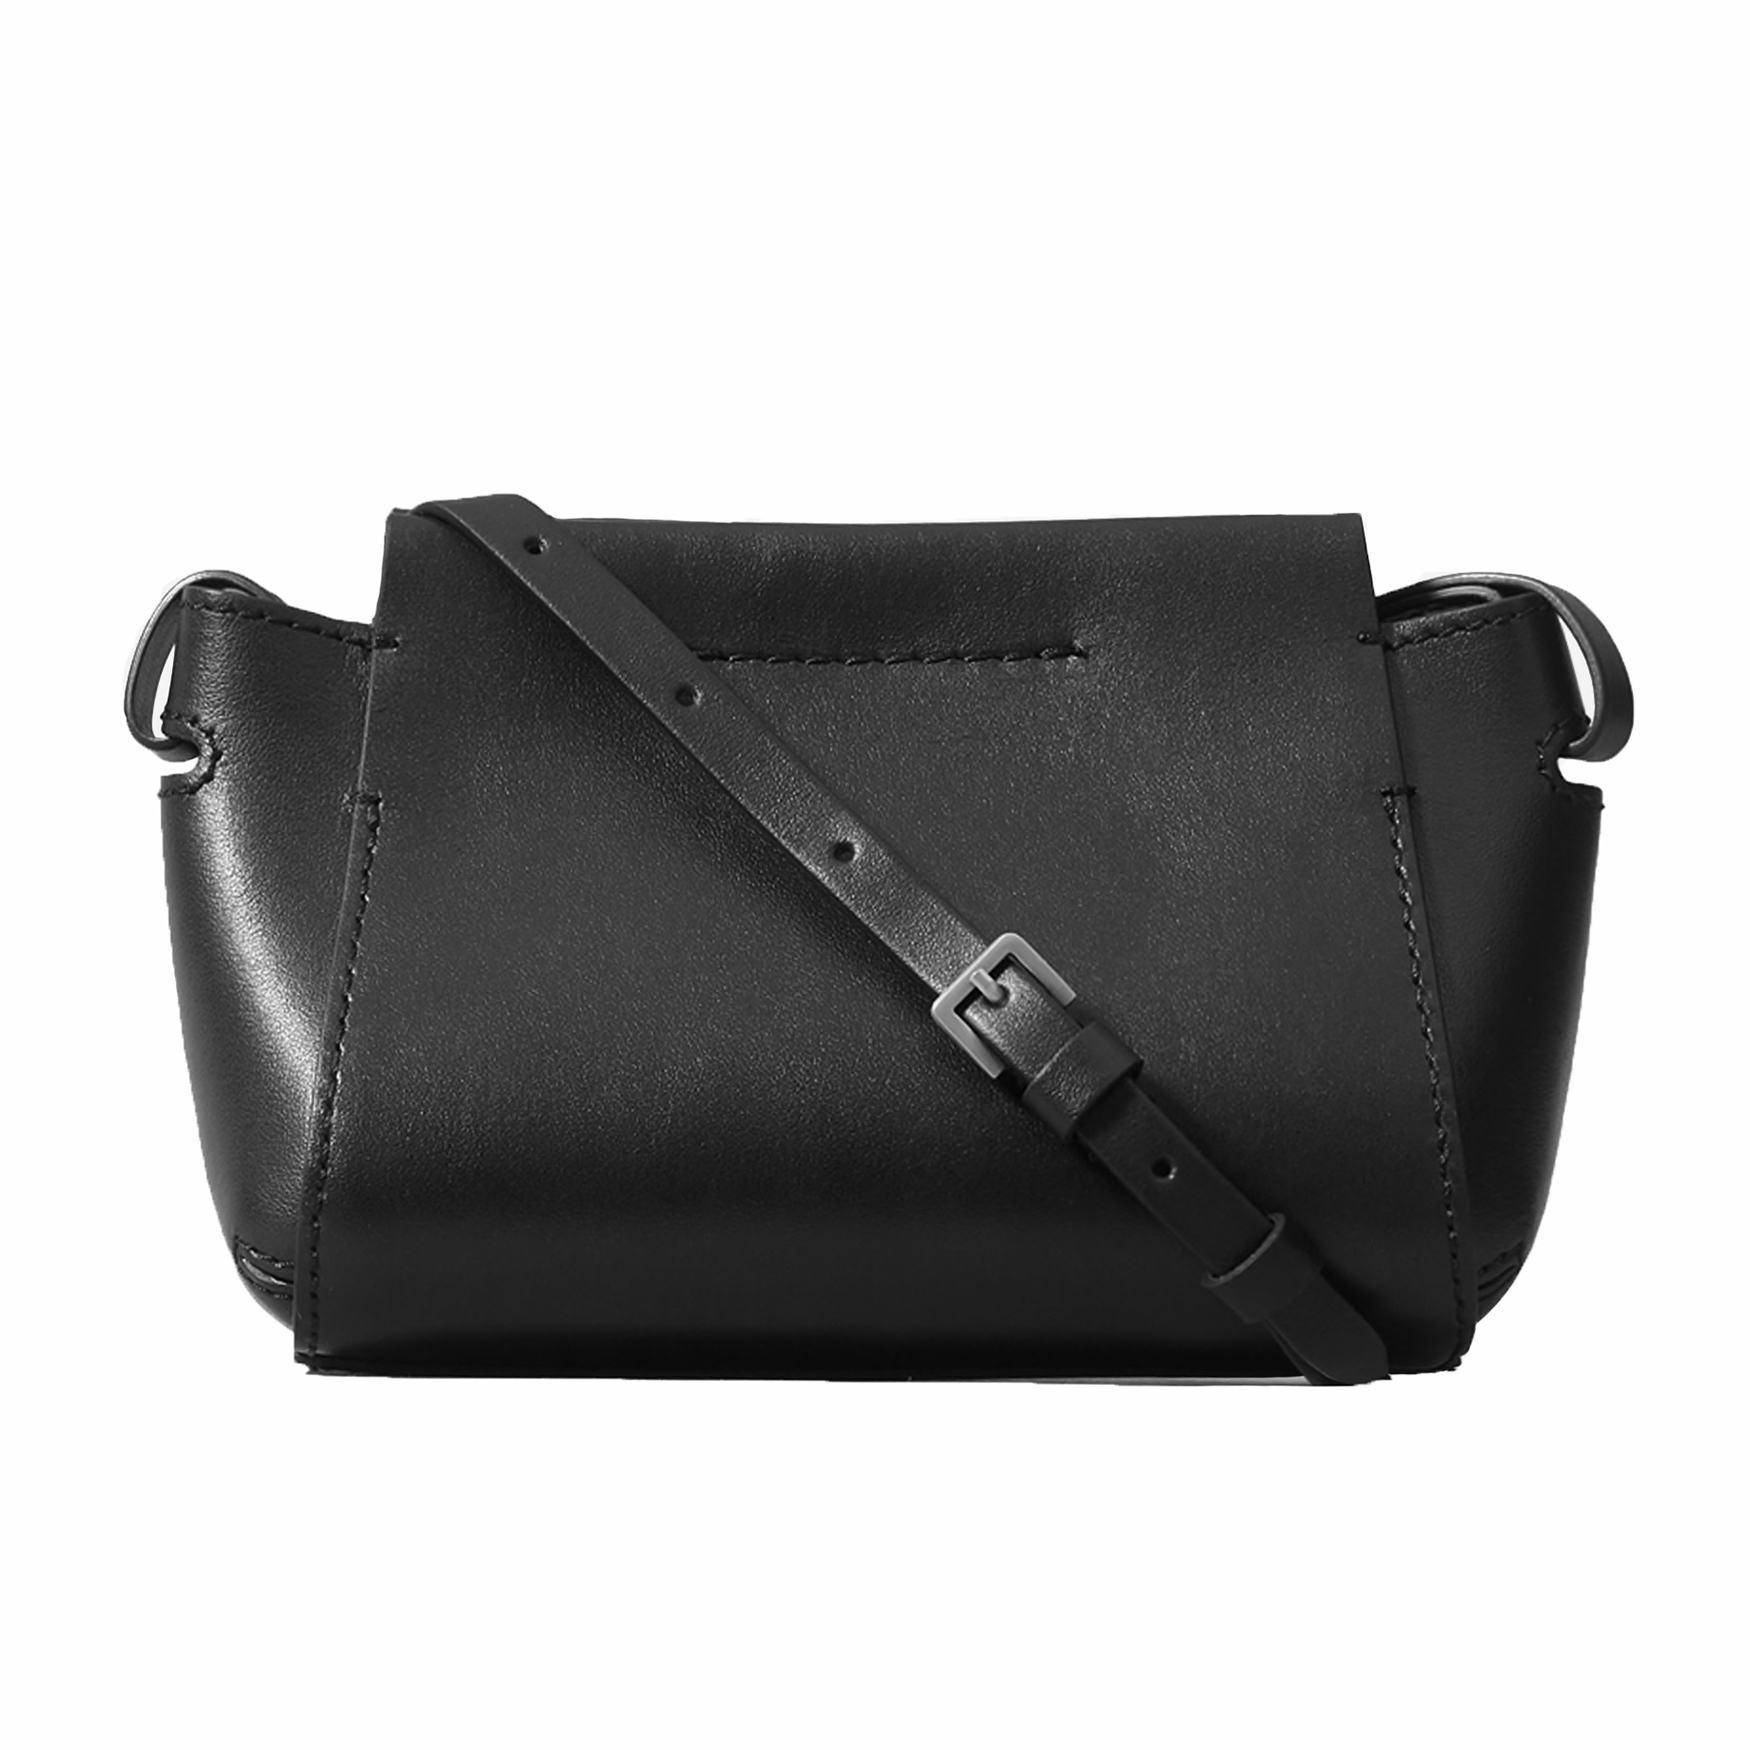 The Micro Form Bag in Black